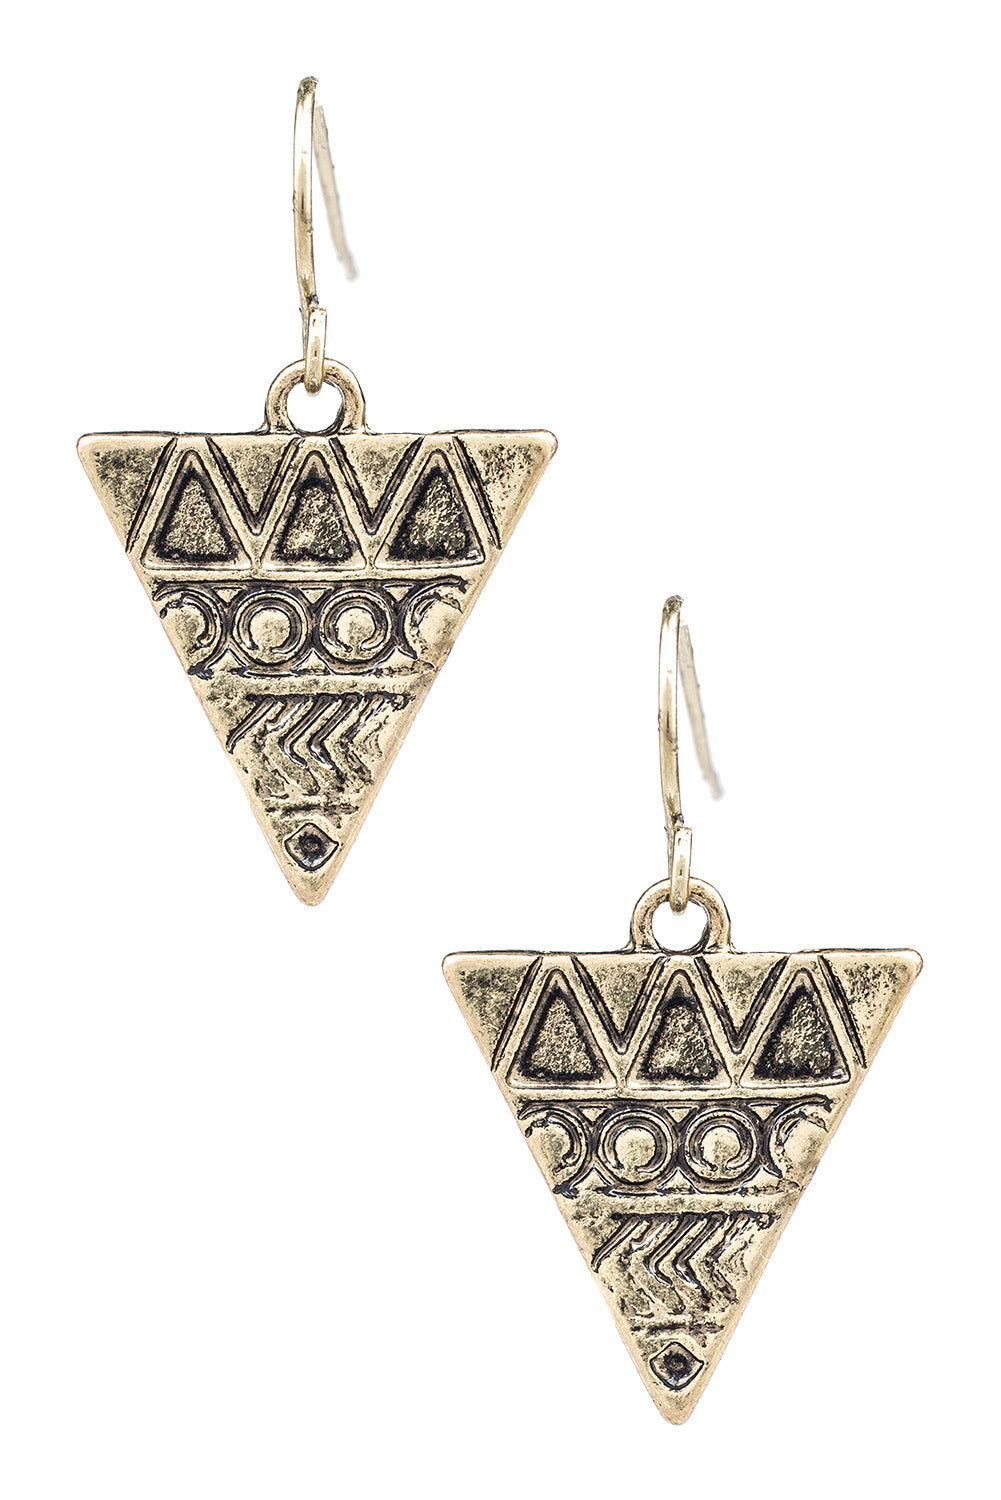 Type 3 All Seeing Earrings